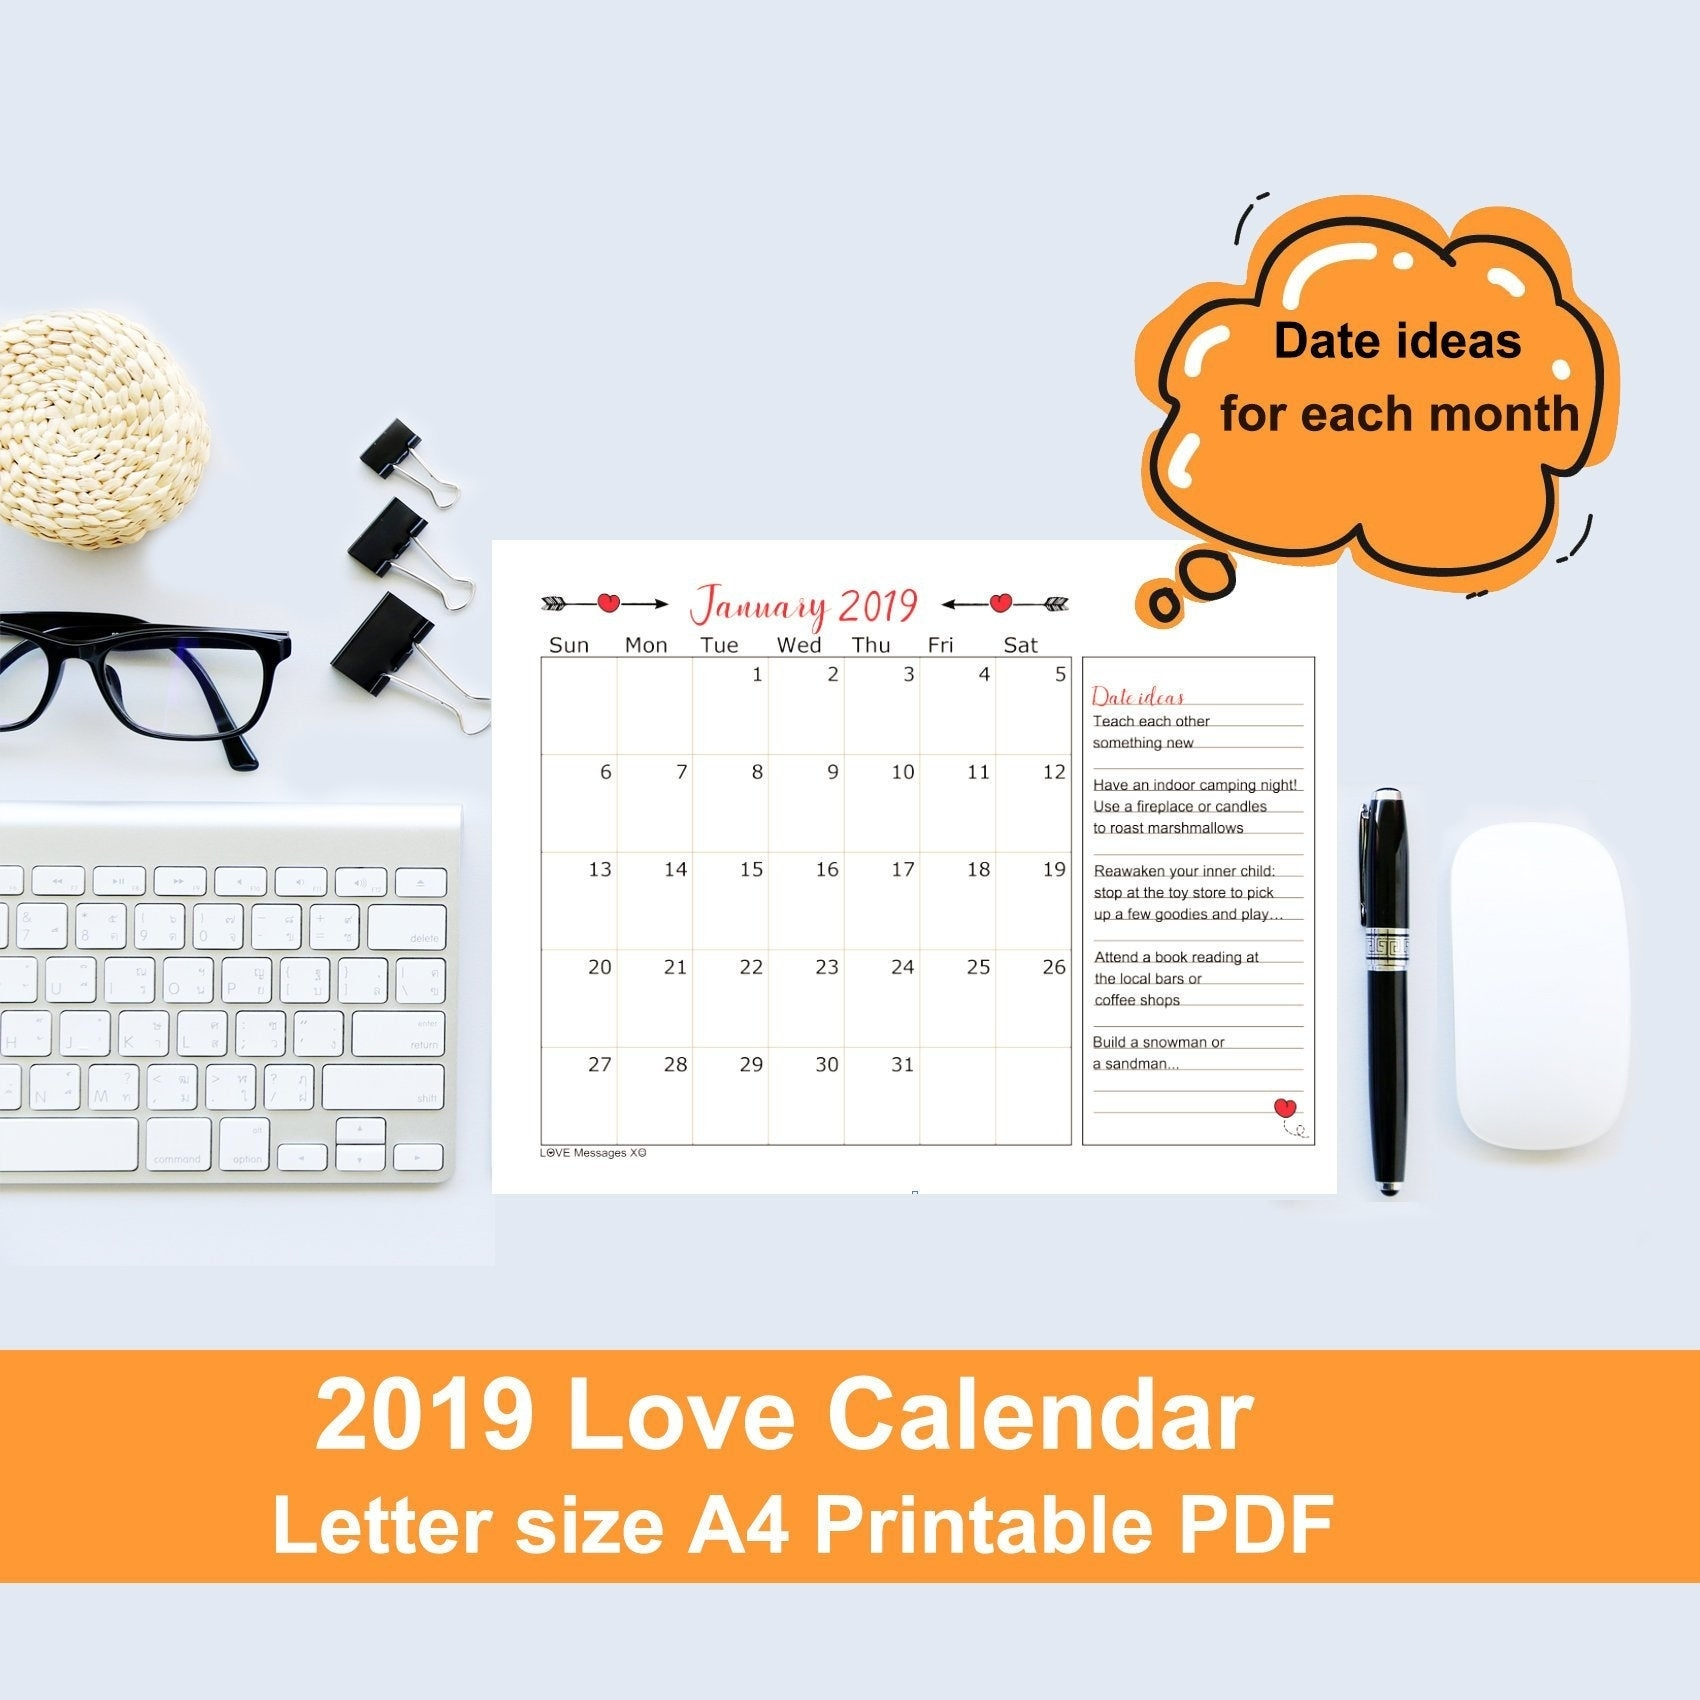 Printable Calendar 2019 Date Night Ideas Digital Calender | Etsy pertaining to 12 Month Photo Calendar Ideas Naughty